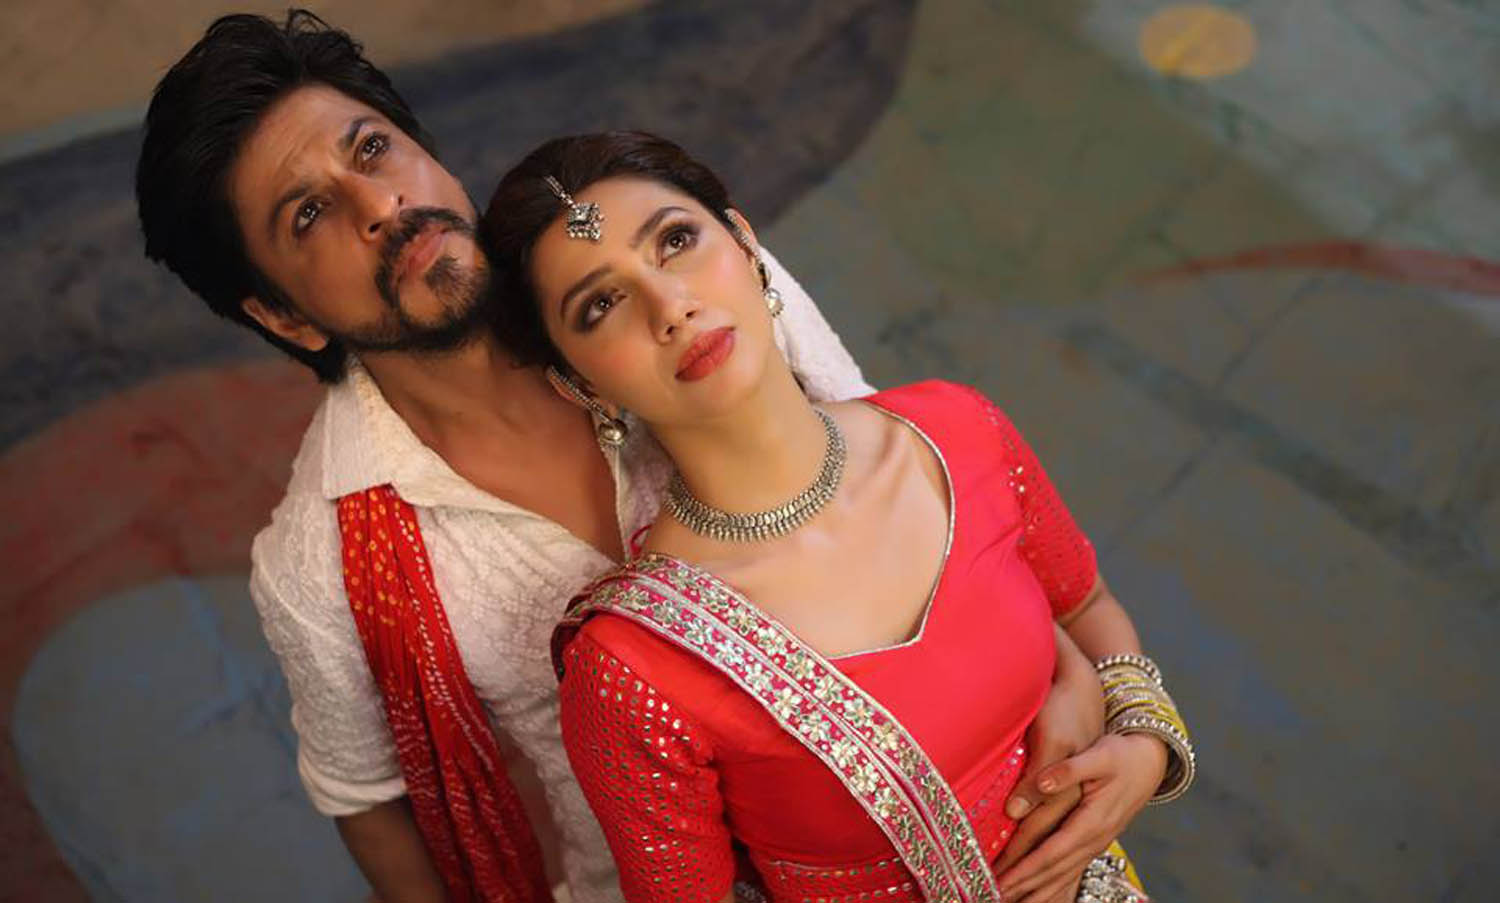 raees review, raees rating, raees hit or flop, raees movie review rating report, shahrukh khan movie 2017, bollywood movie reviews, latest movie review